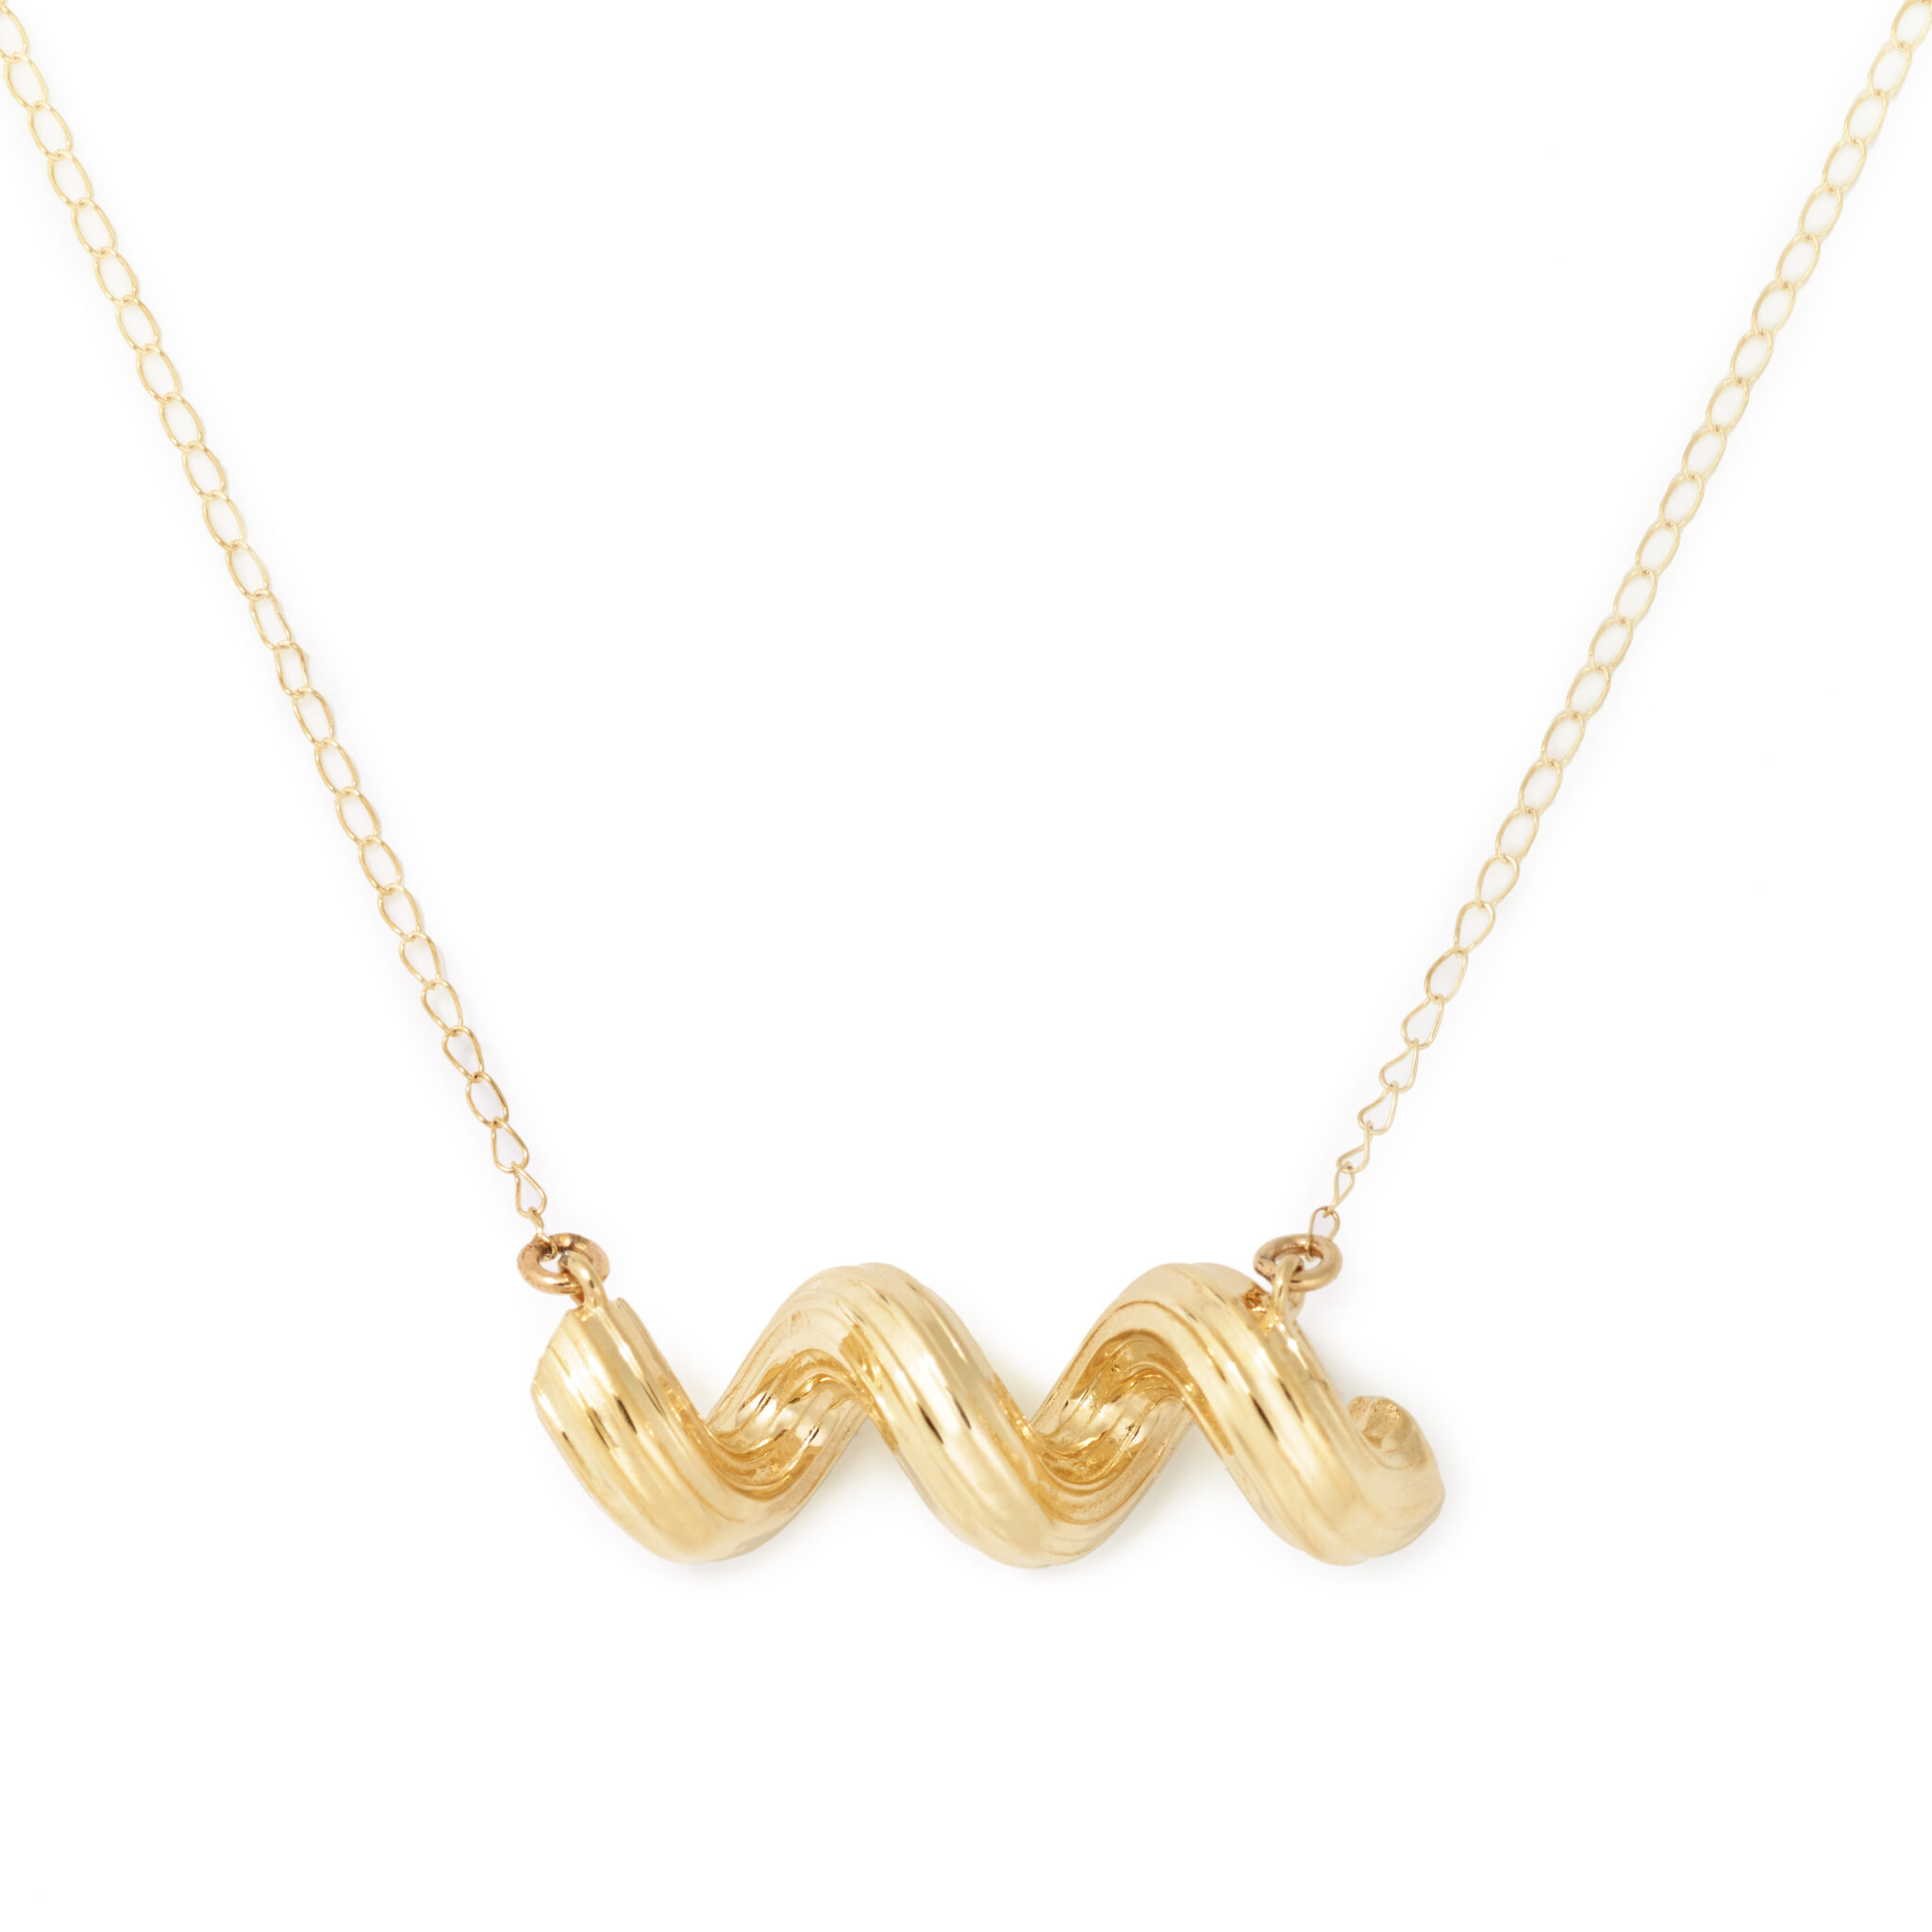 Cellentani Necklace, Yellow Gold Plated